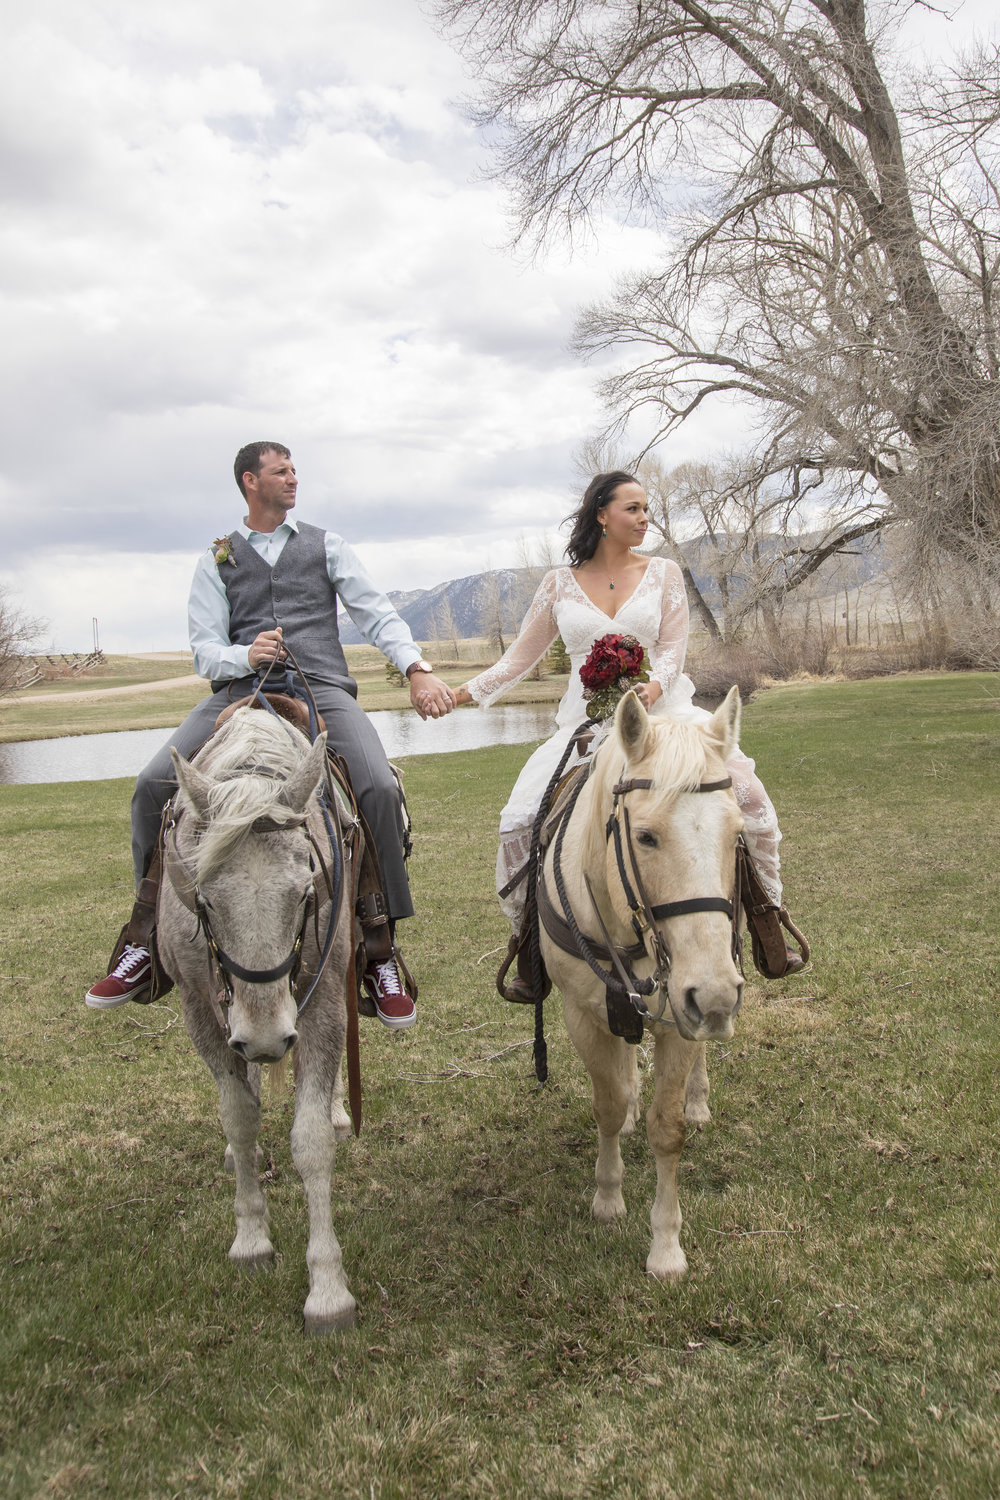 Bride and Groom on Horses